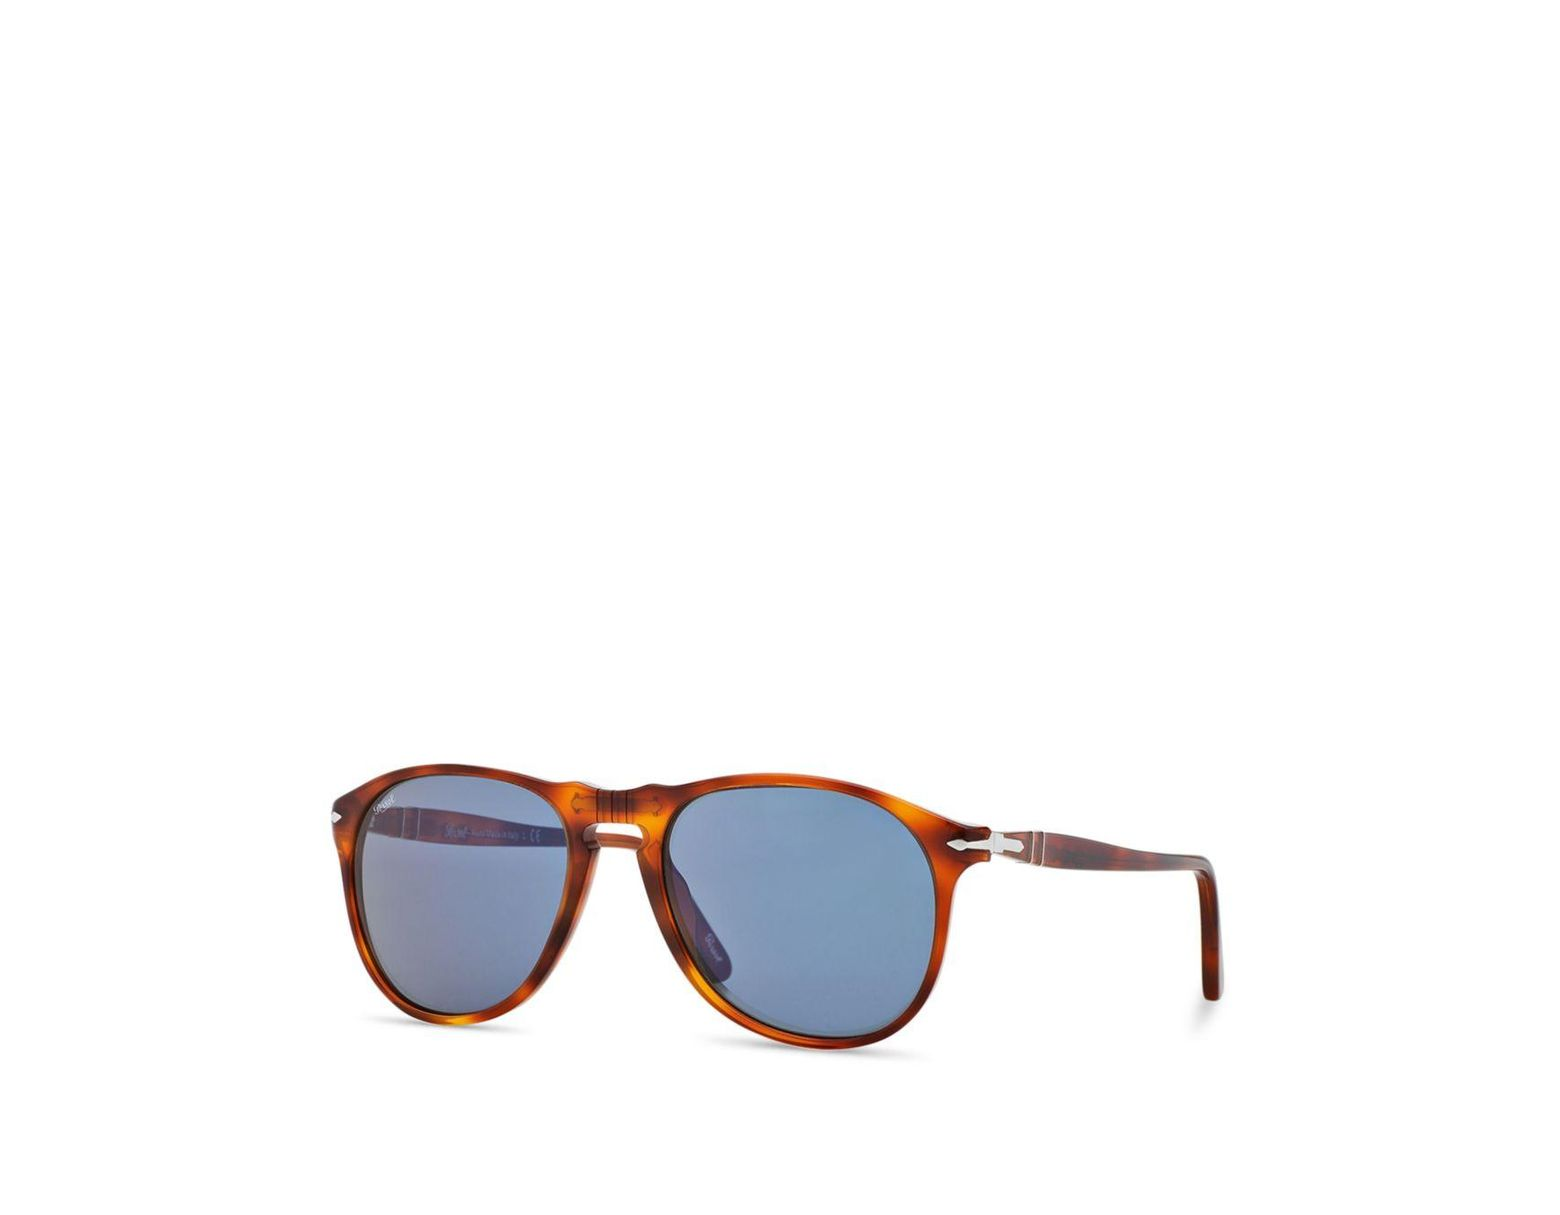 d07ca50c56 Persol Men s Icons Collection Evolution Pilot Square Sunglasses in Brown  for Men - Lyst